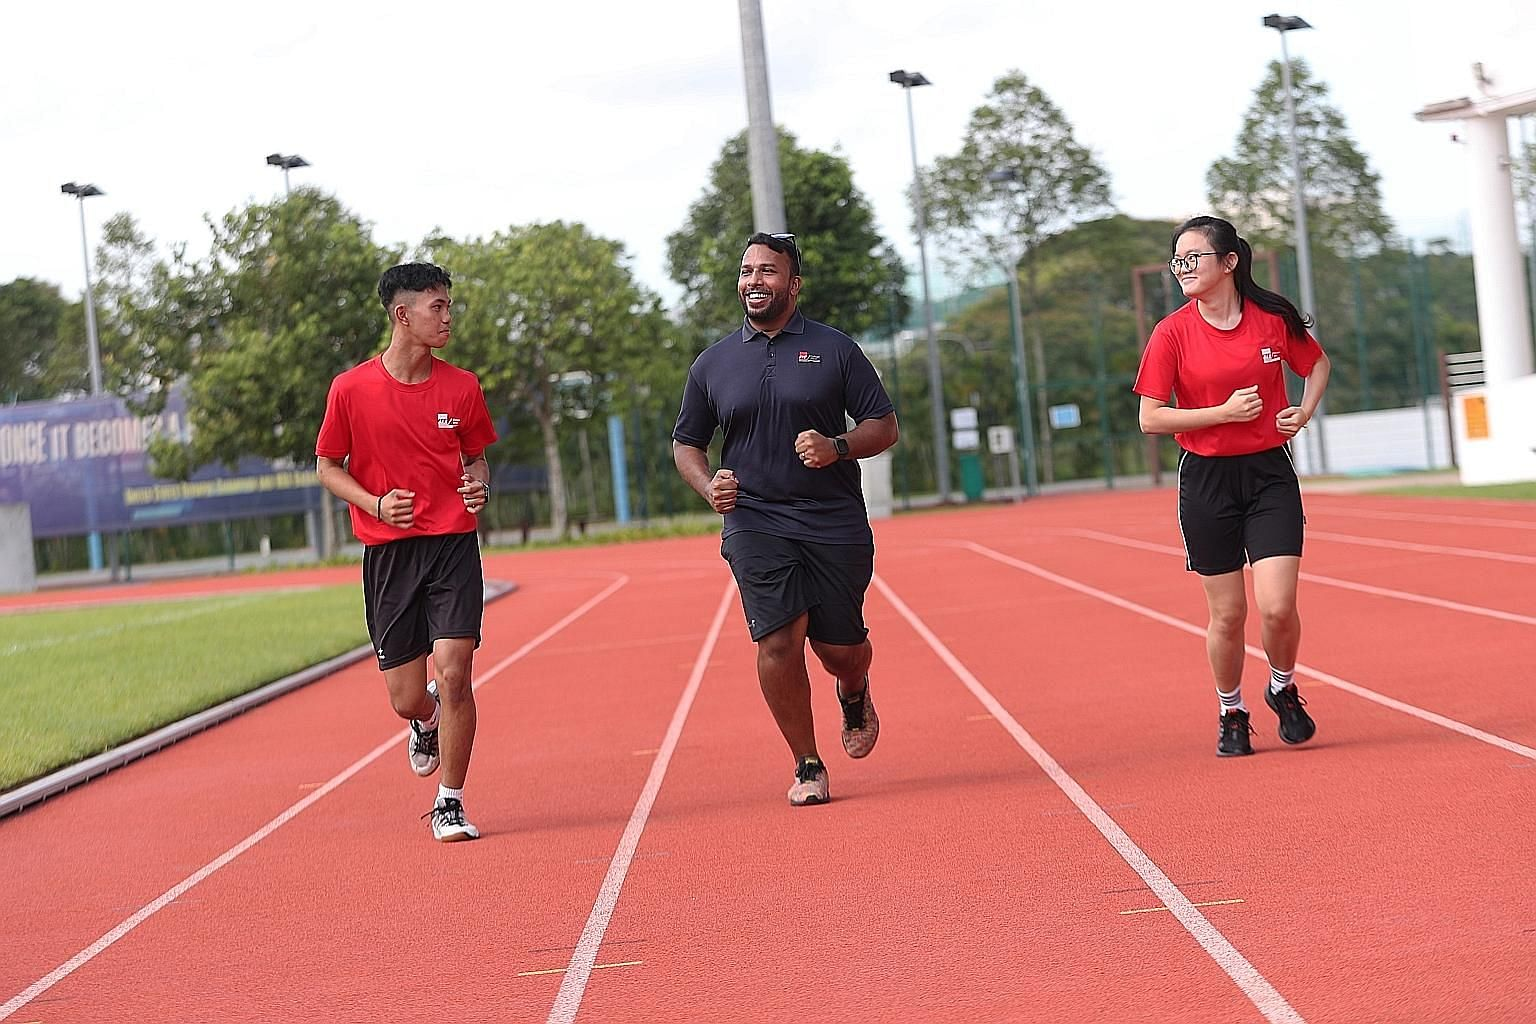 Physical education lecturer Mark Daniel running with Mikhail Raiyan, a second-year Nitec student in electrical engineering, power and control, and Ng Li Yan, in her first year in the Nitec travel and tourism services course. ST PHOTO: TIMOTHY DAVID